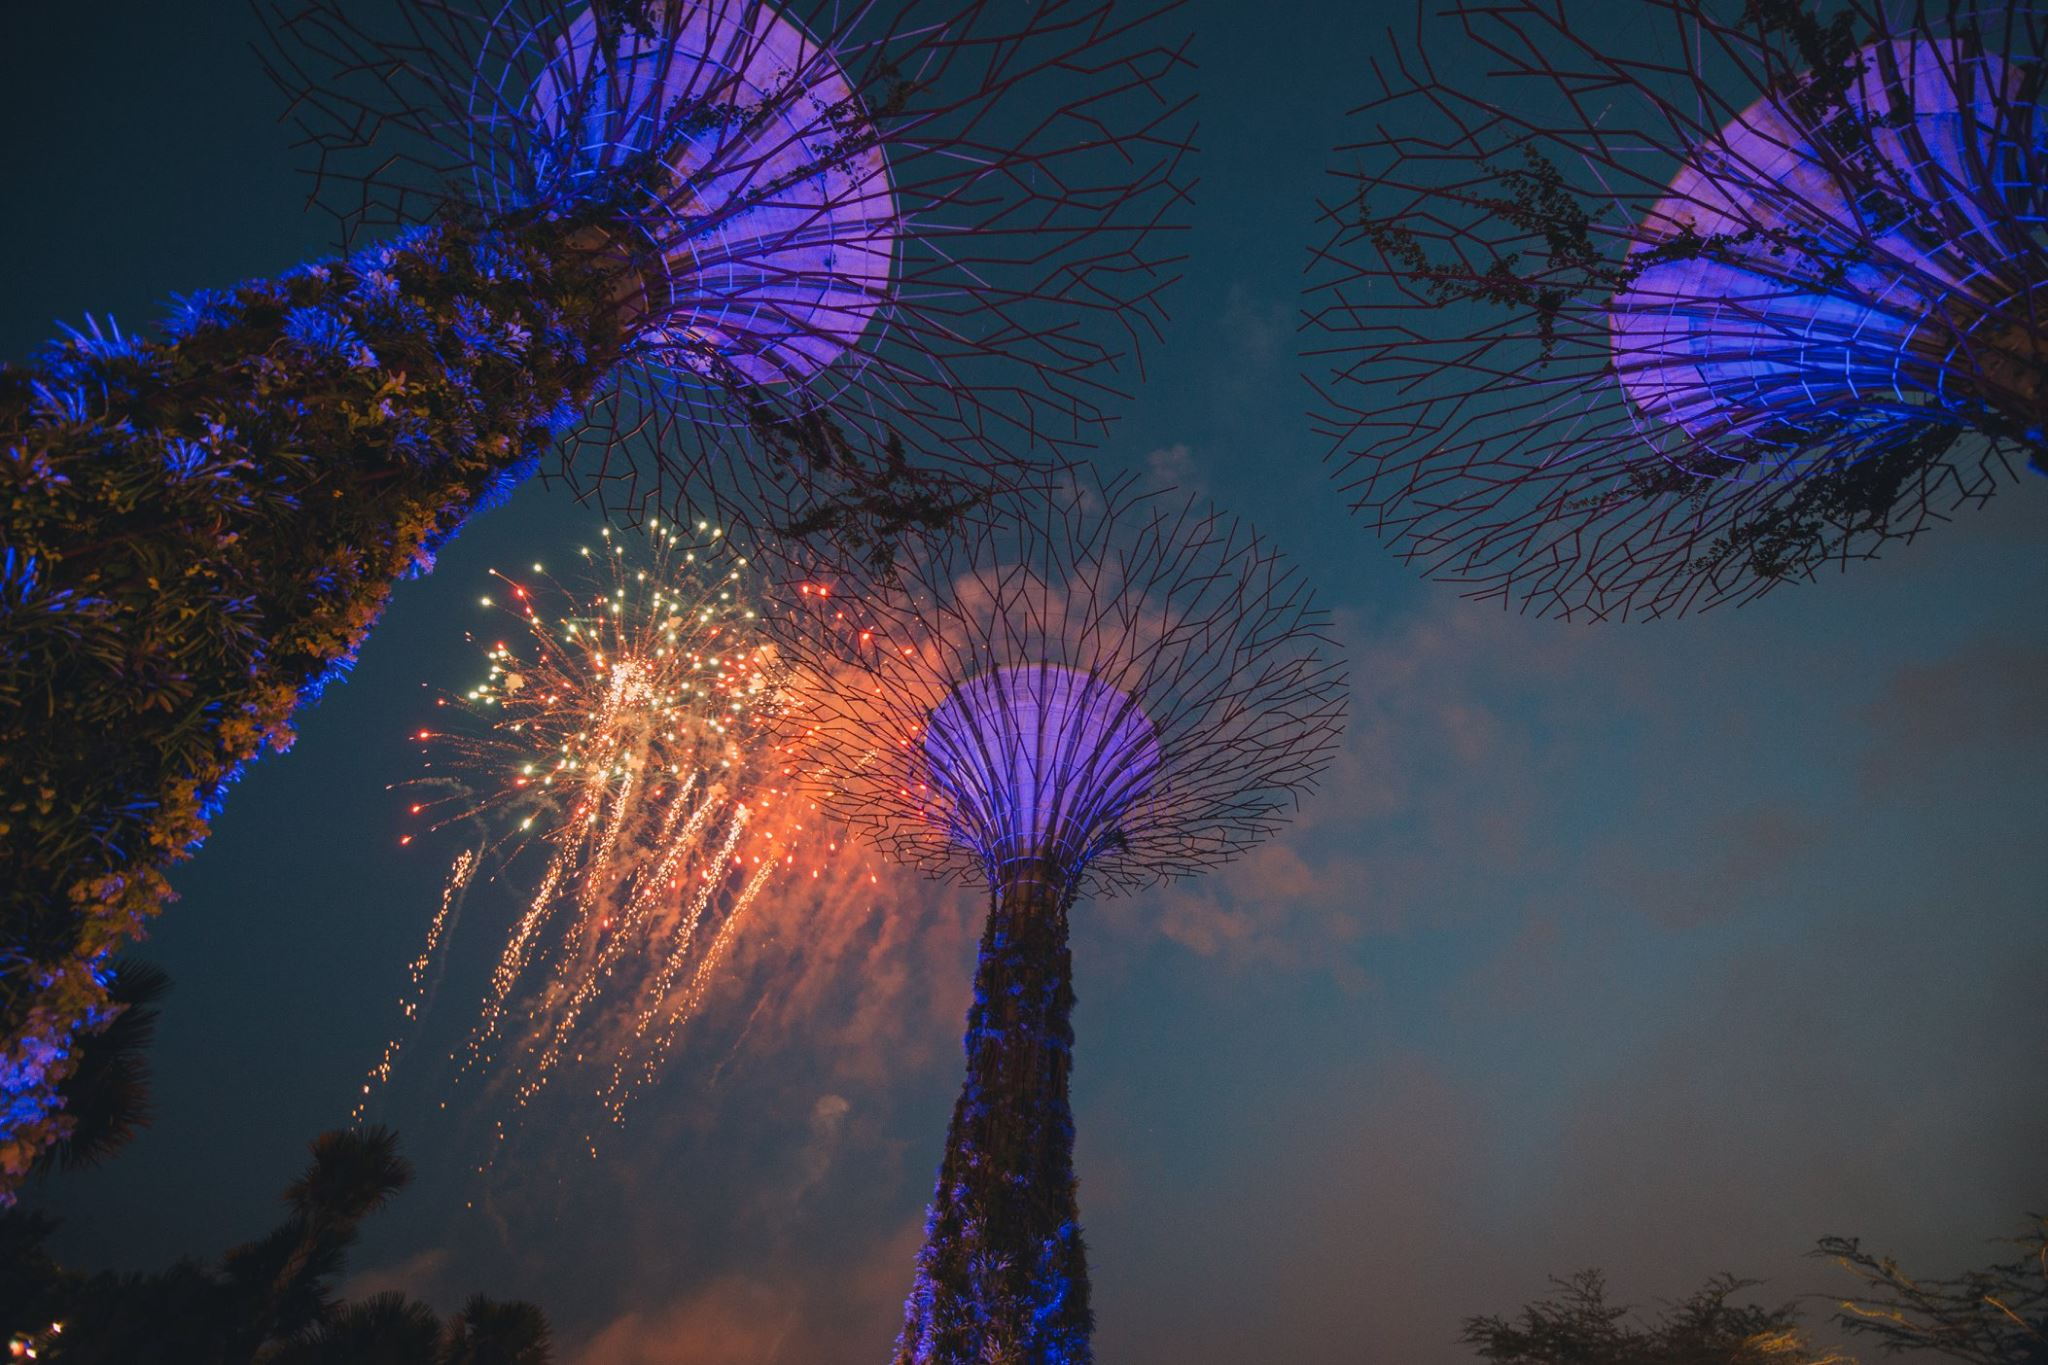 best fireworks viewing spots in singapore - gardens by the bay supertree grove